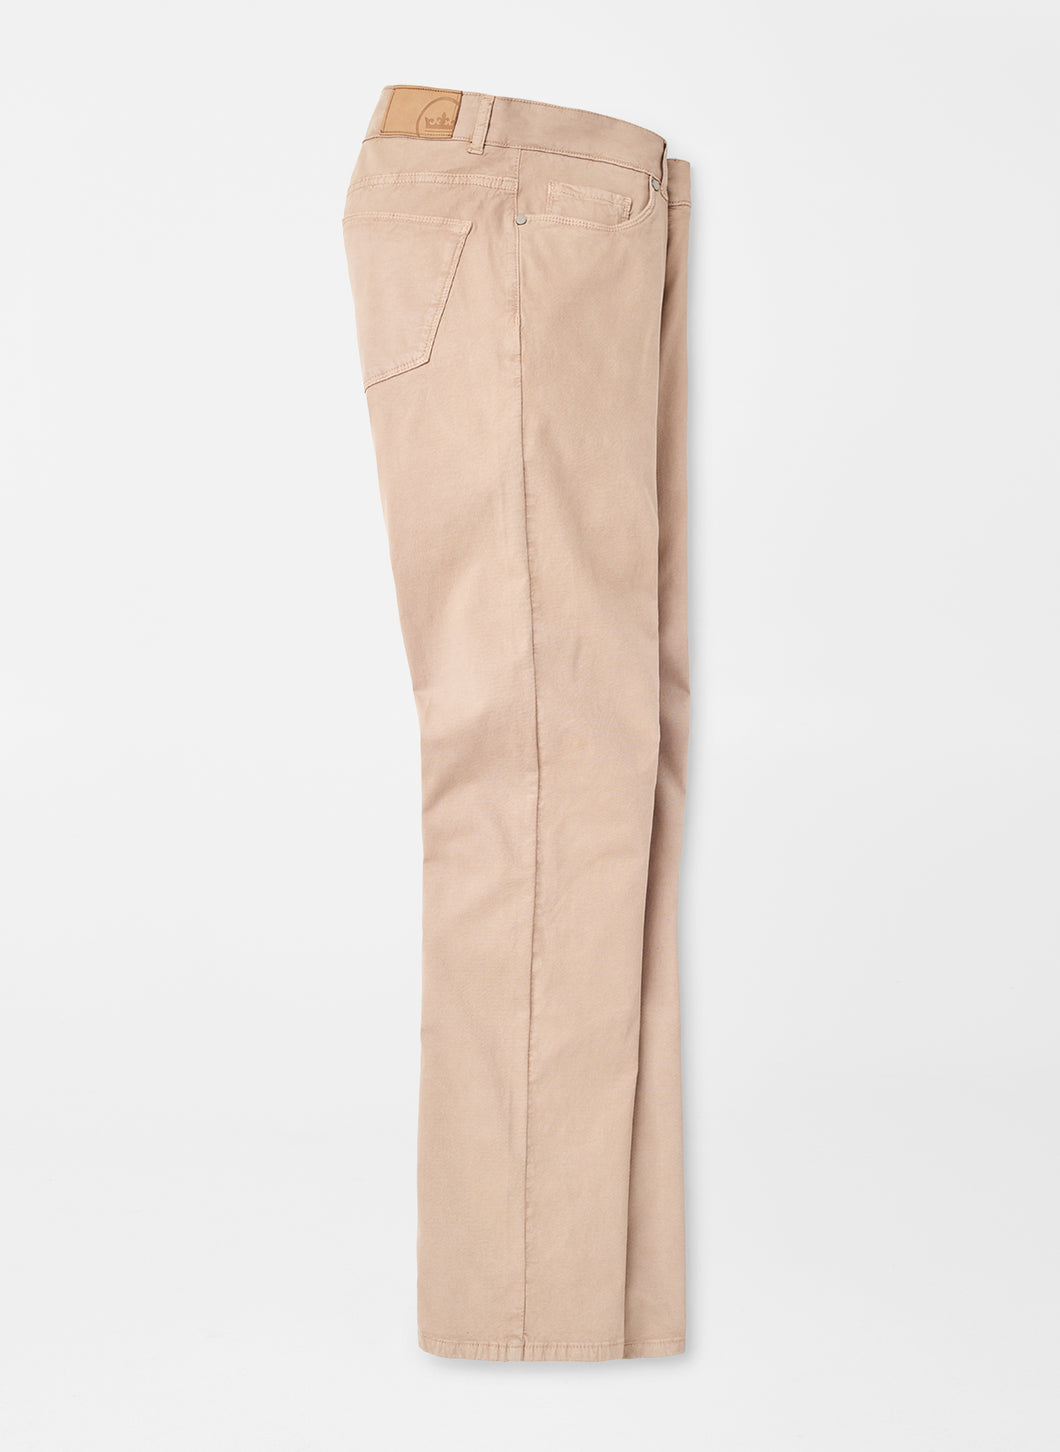 Peter Millar Wayfare Five-Pocket Pant in Khaki